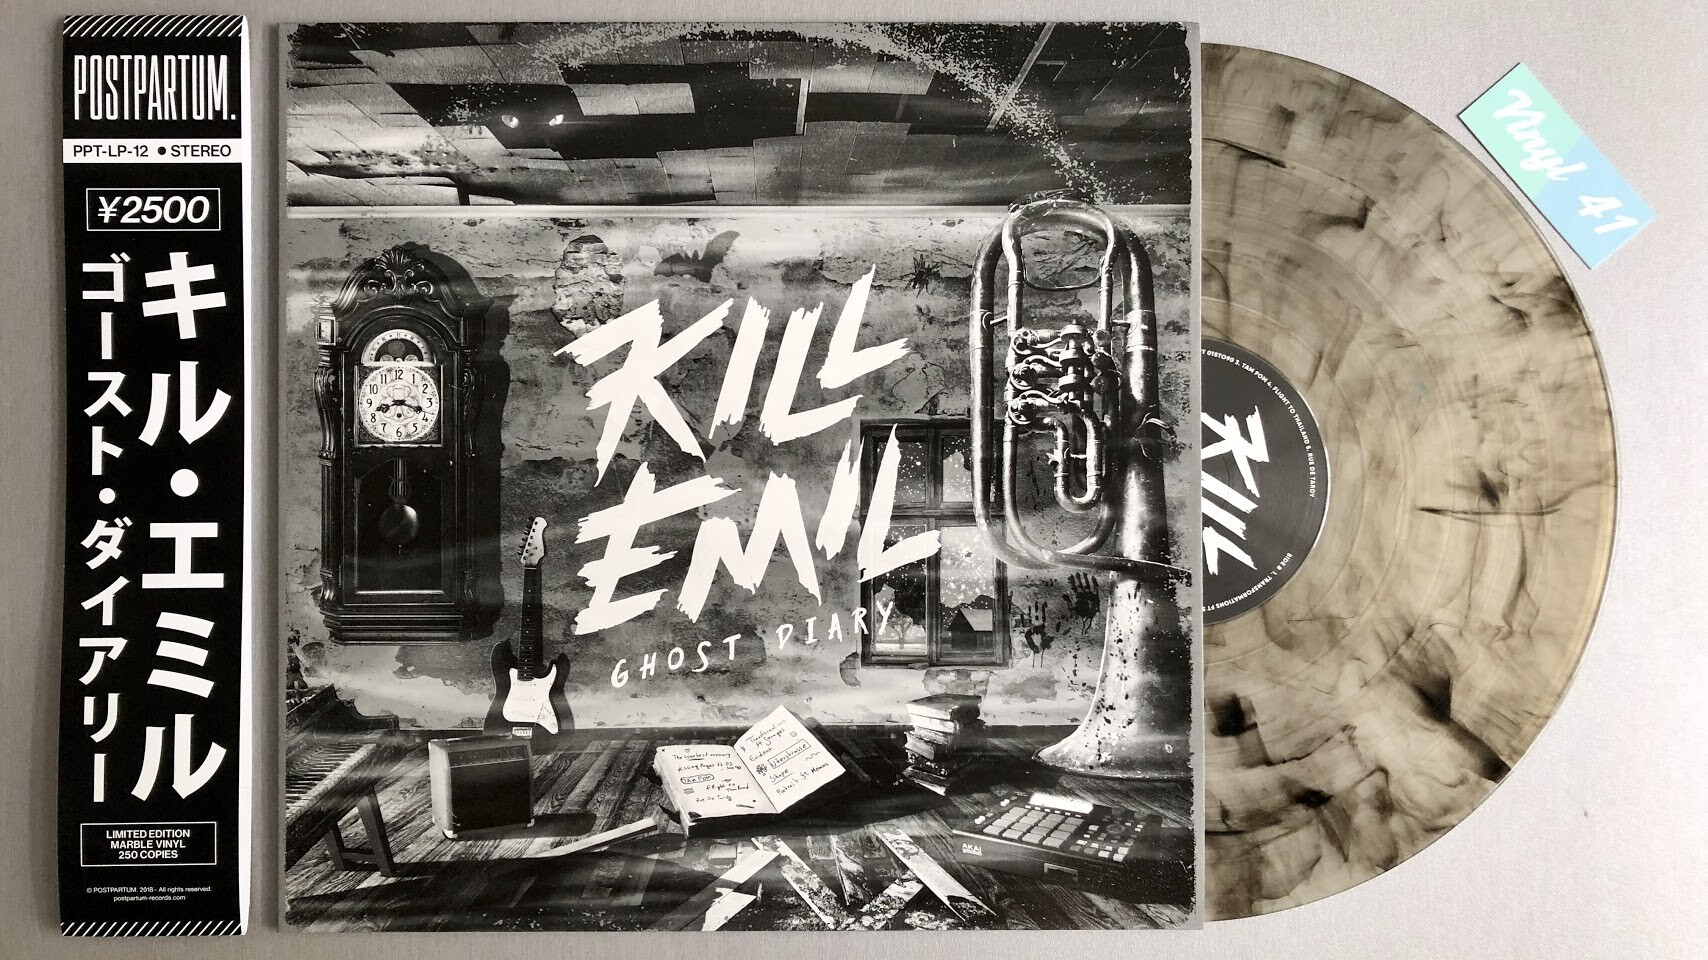 Kill Emil - Ghost Diary (POSTPARTUM.)